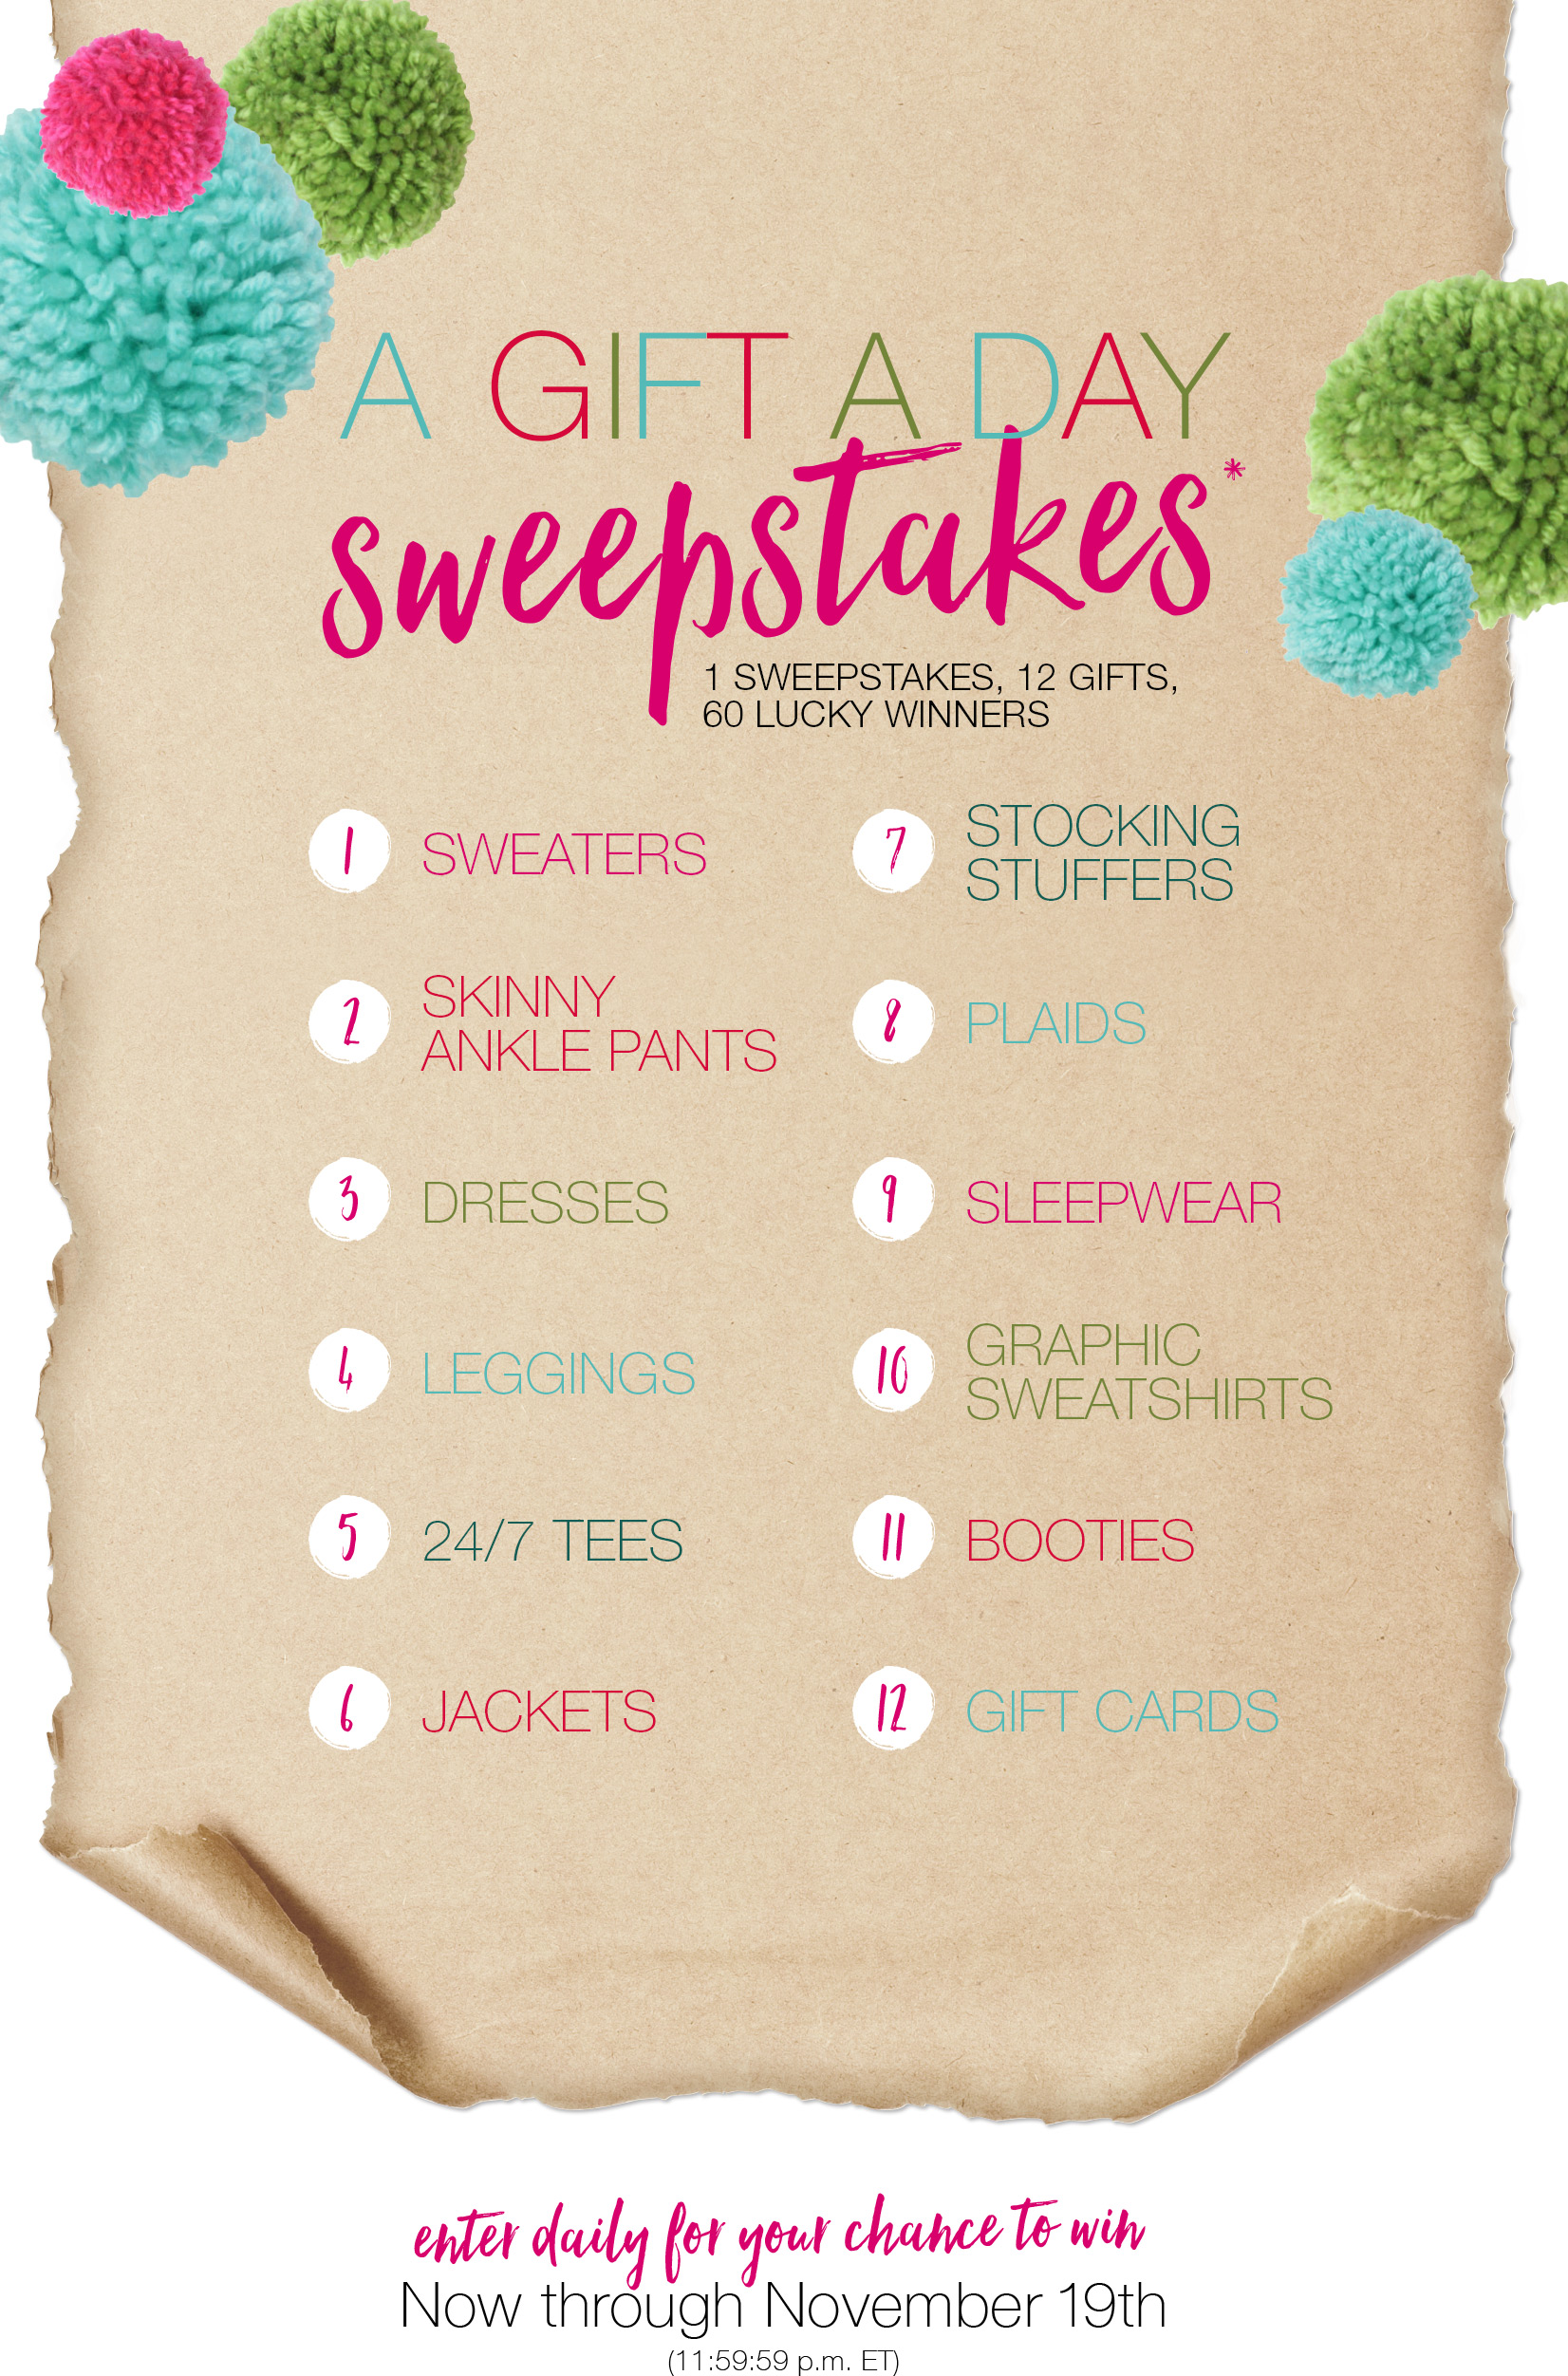 Enter for your chance to win clothing items and gift cards from Maurices - daily winners